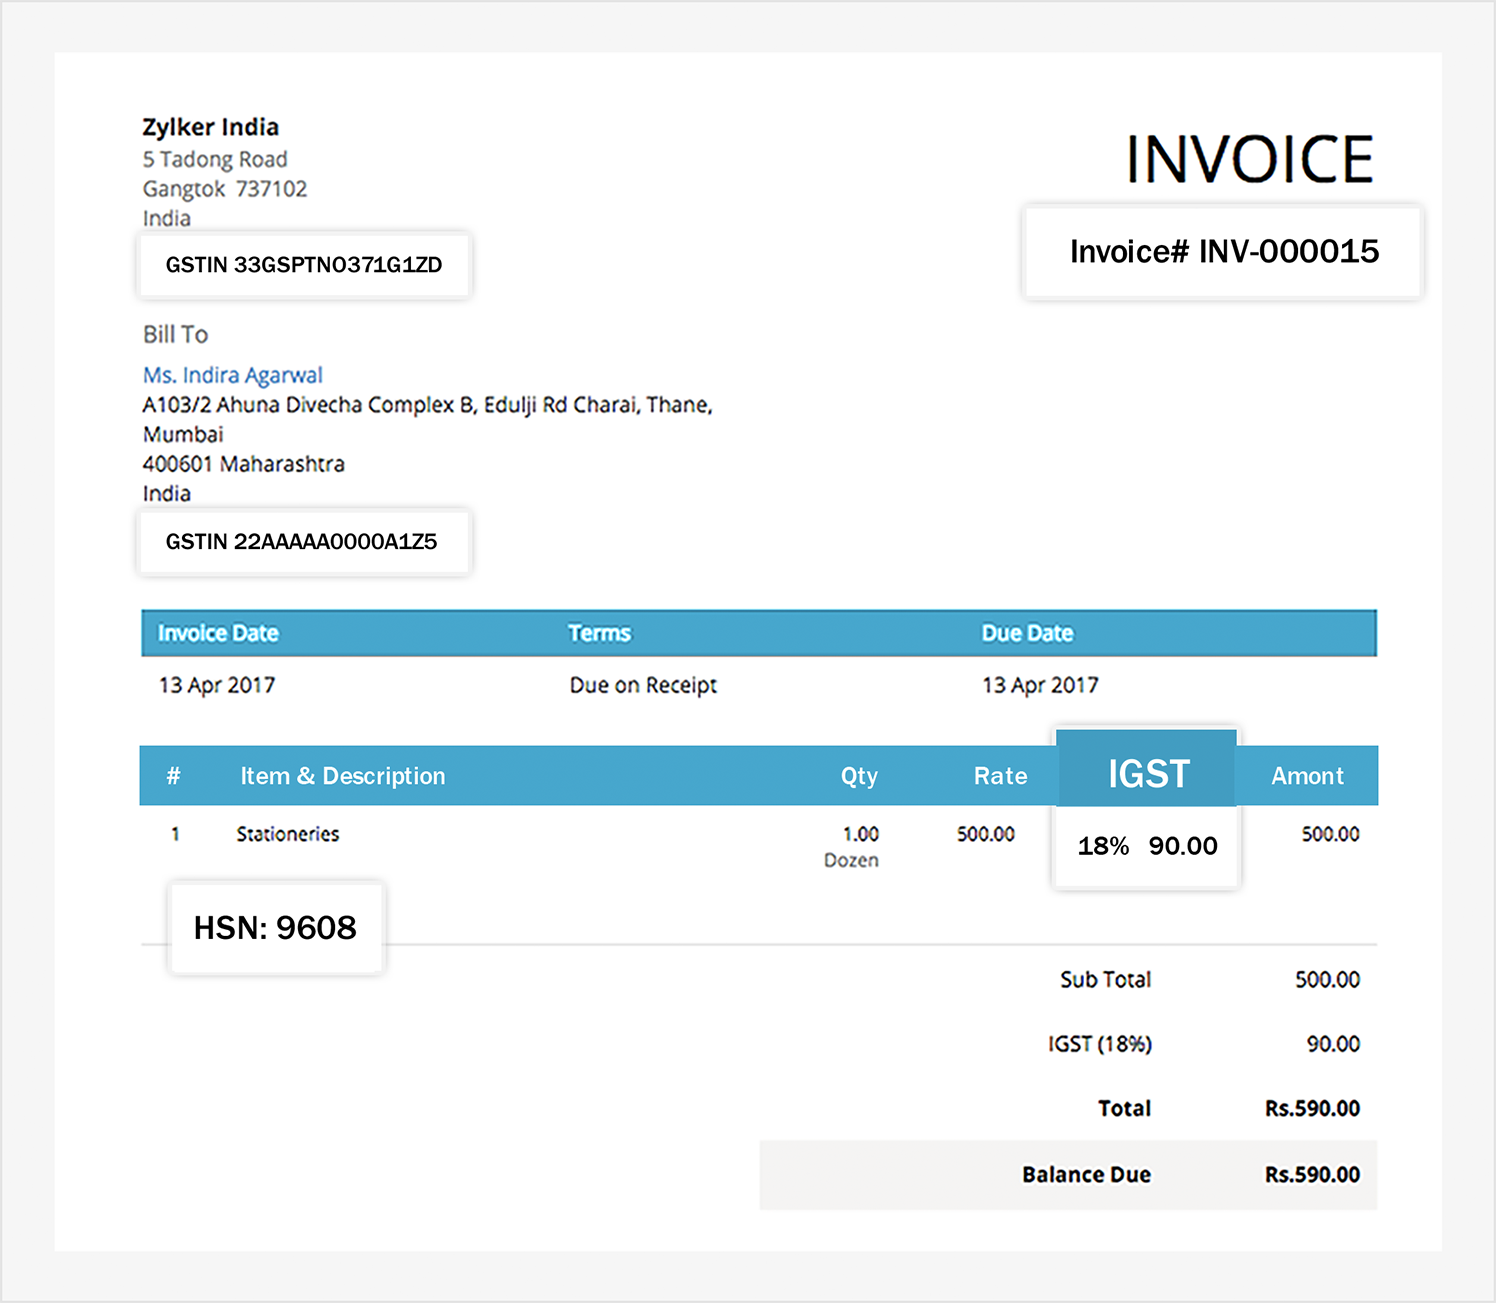 Written Invoice Template Excel Create And Send Gst Compliant Invoices  Zoho Books General Contractor Invoice Word with Cash Payment Receipt Template  Gst Compliant Invoice Electronic Ticket Passenger Itinerary Receipt